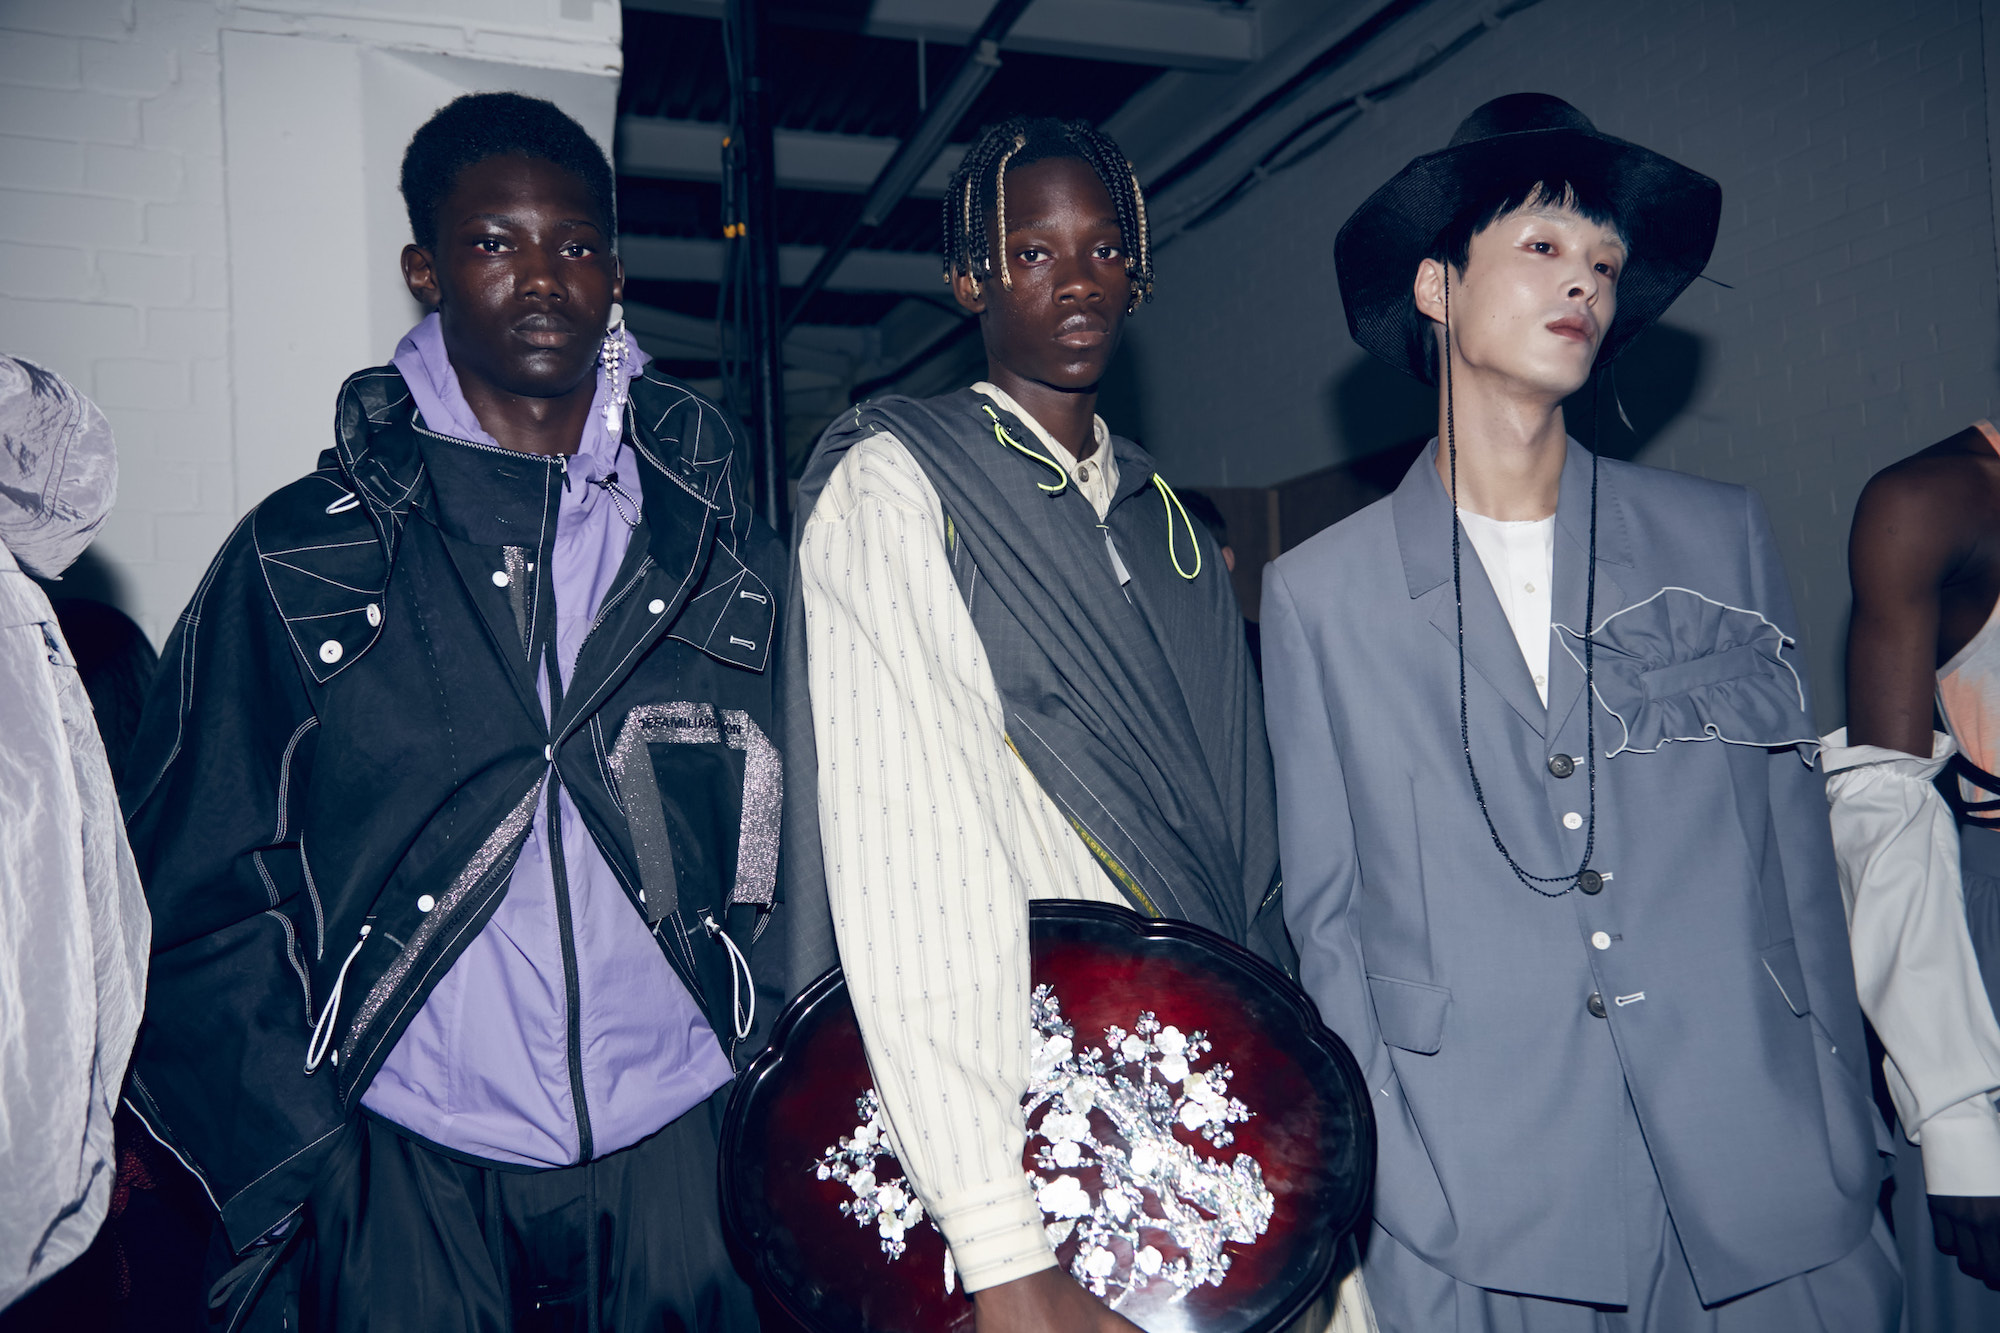 MÜNN Spring/Summer 2020 for LFWM three models